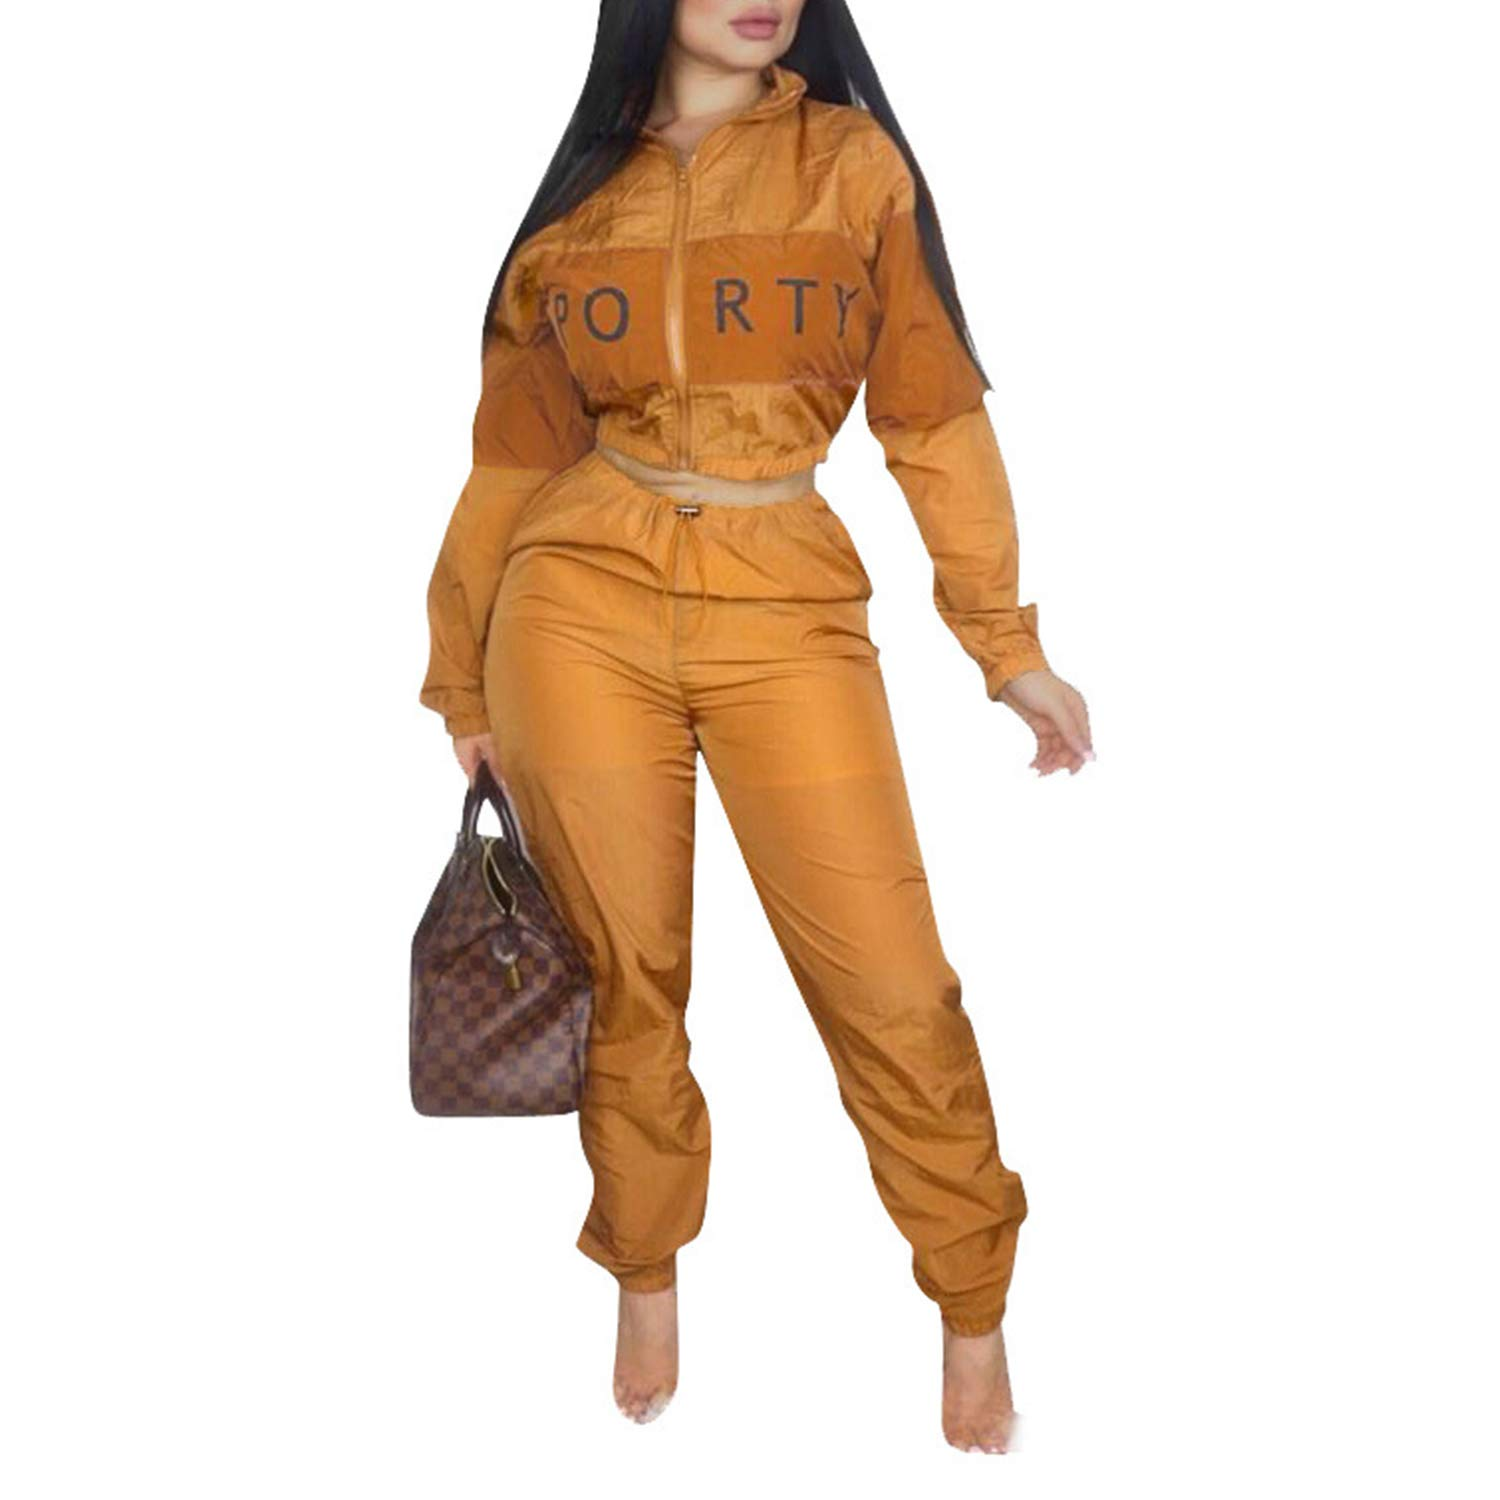 Casual Sweatsuit Crop Tops Long Sleeves Jacket High Waisted Pants Letter Orange 2X by Sherro